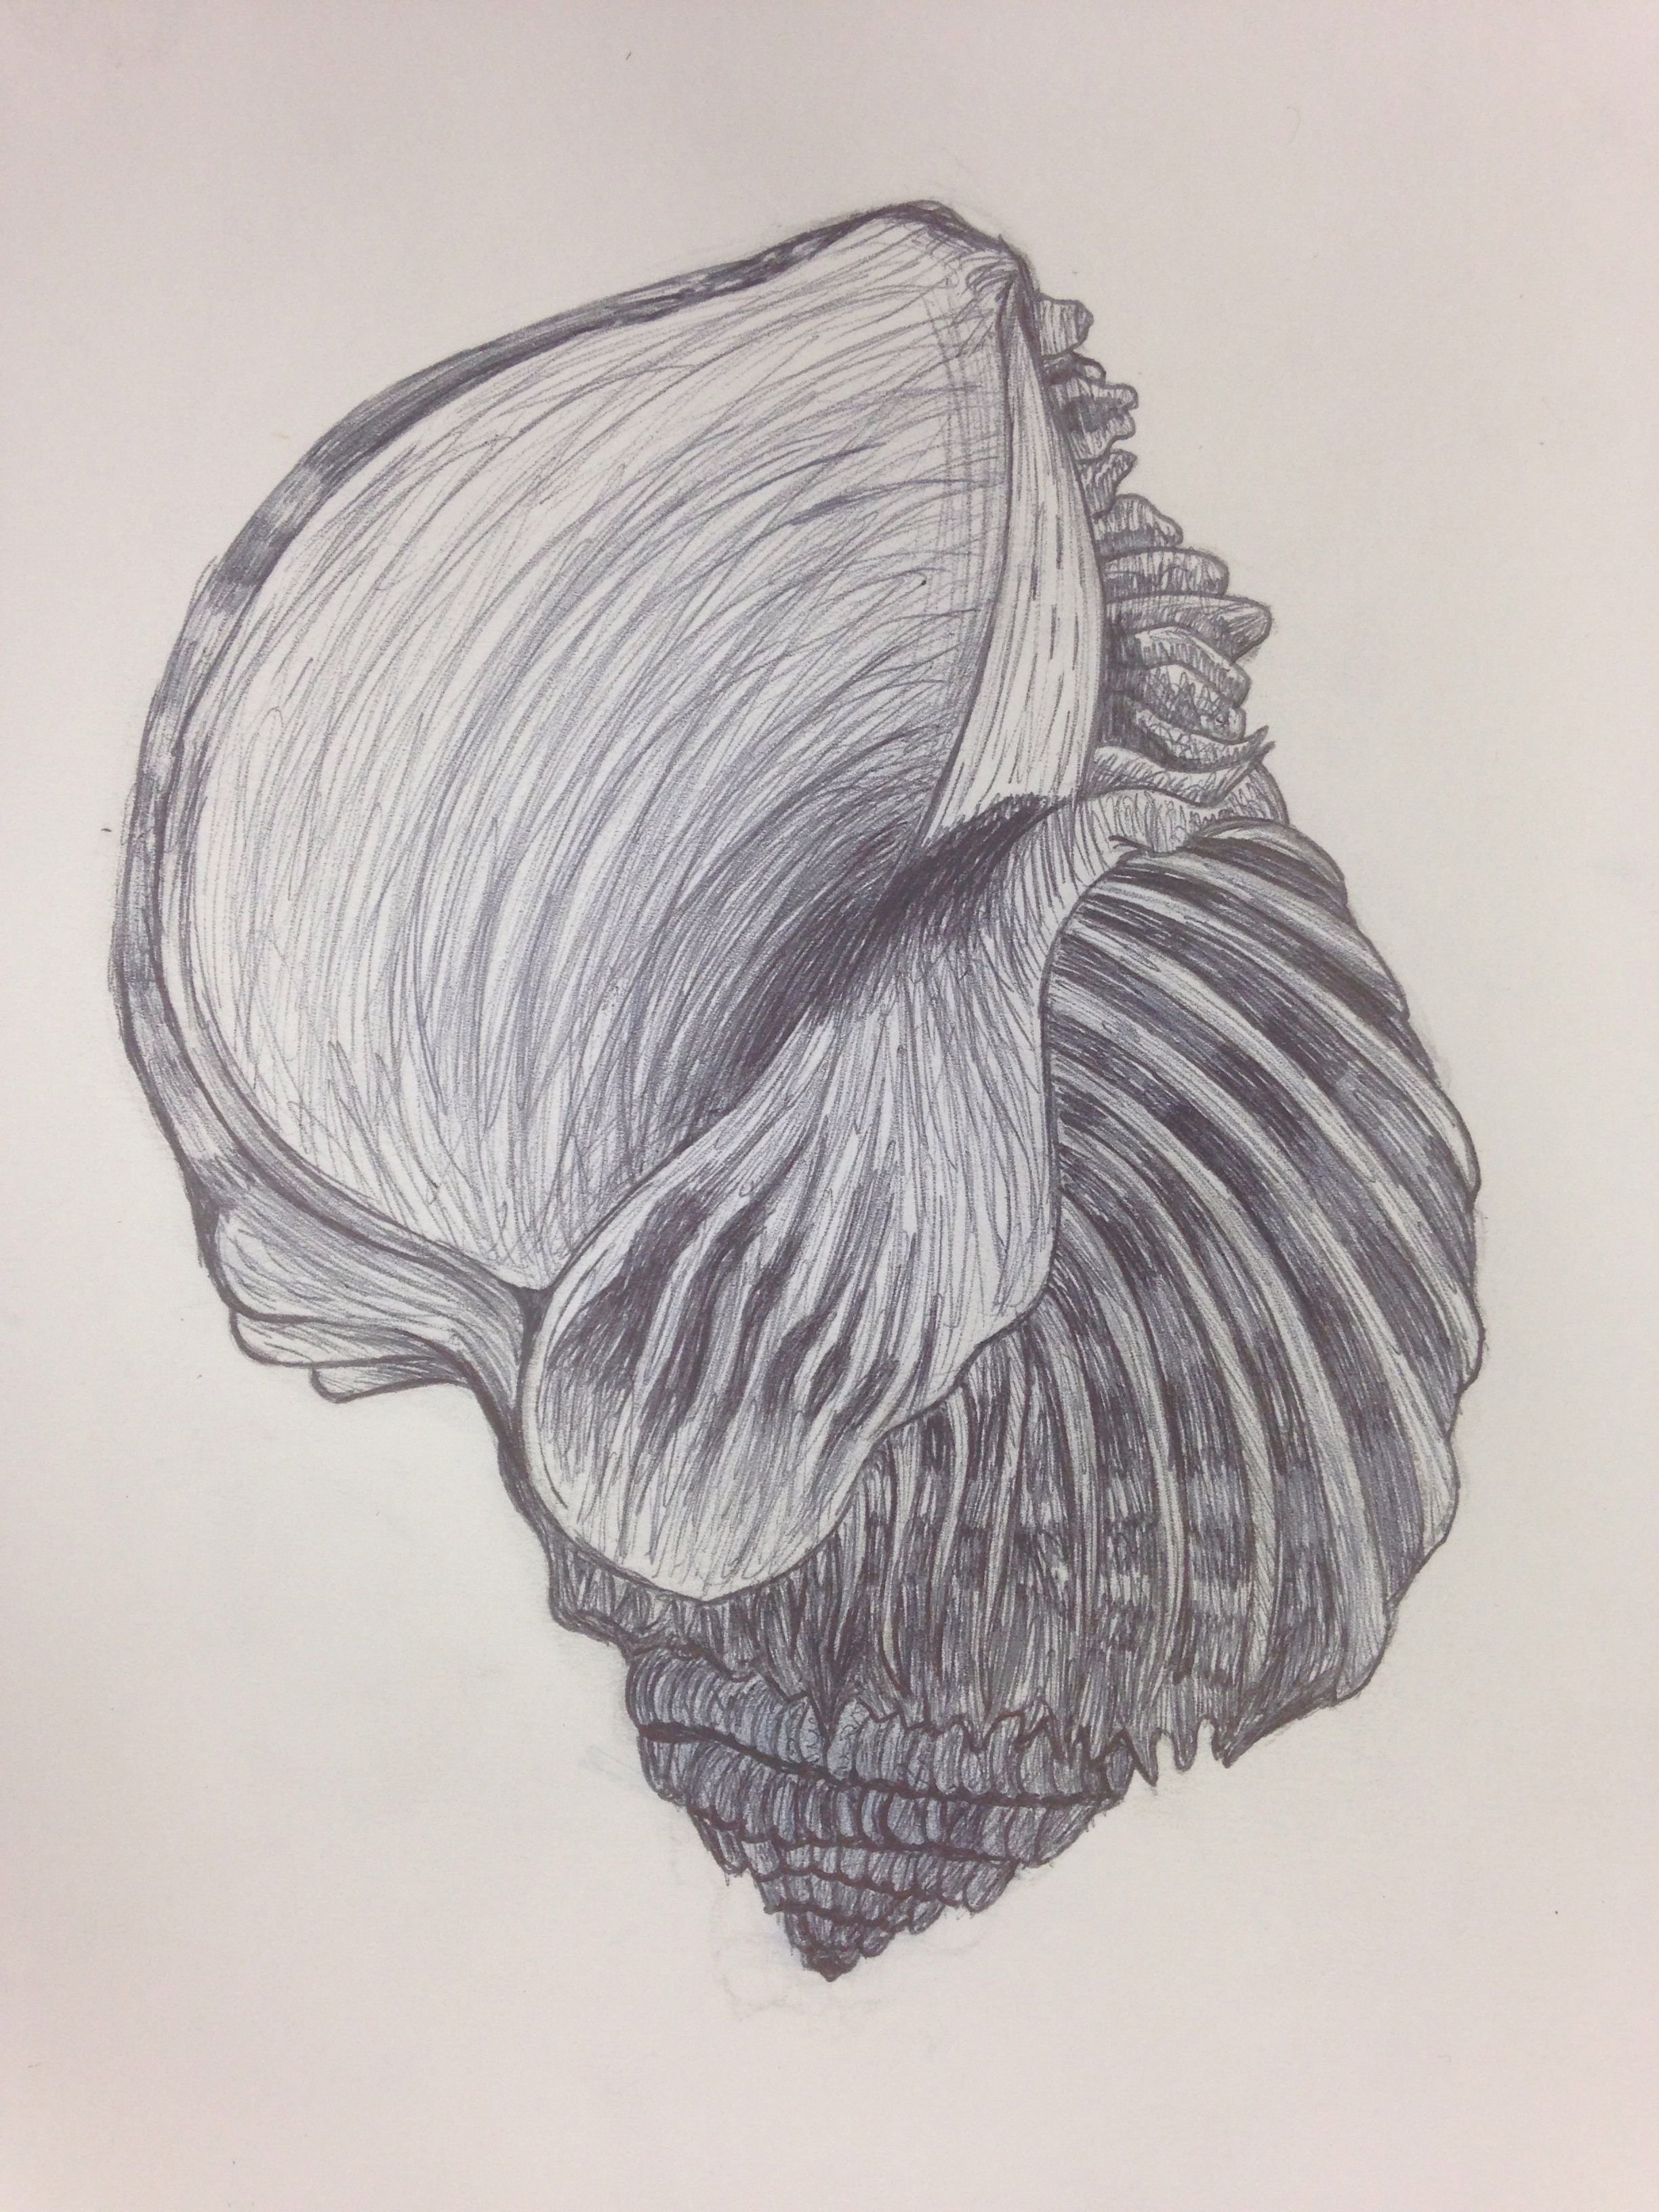 2448x3264 Shell Biro Drawing, Note The Curved Build Up Of Tone To Suggest 3